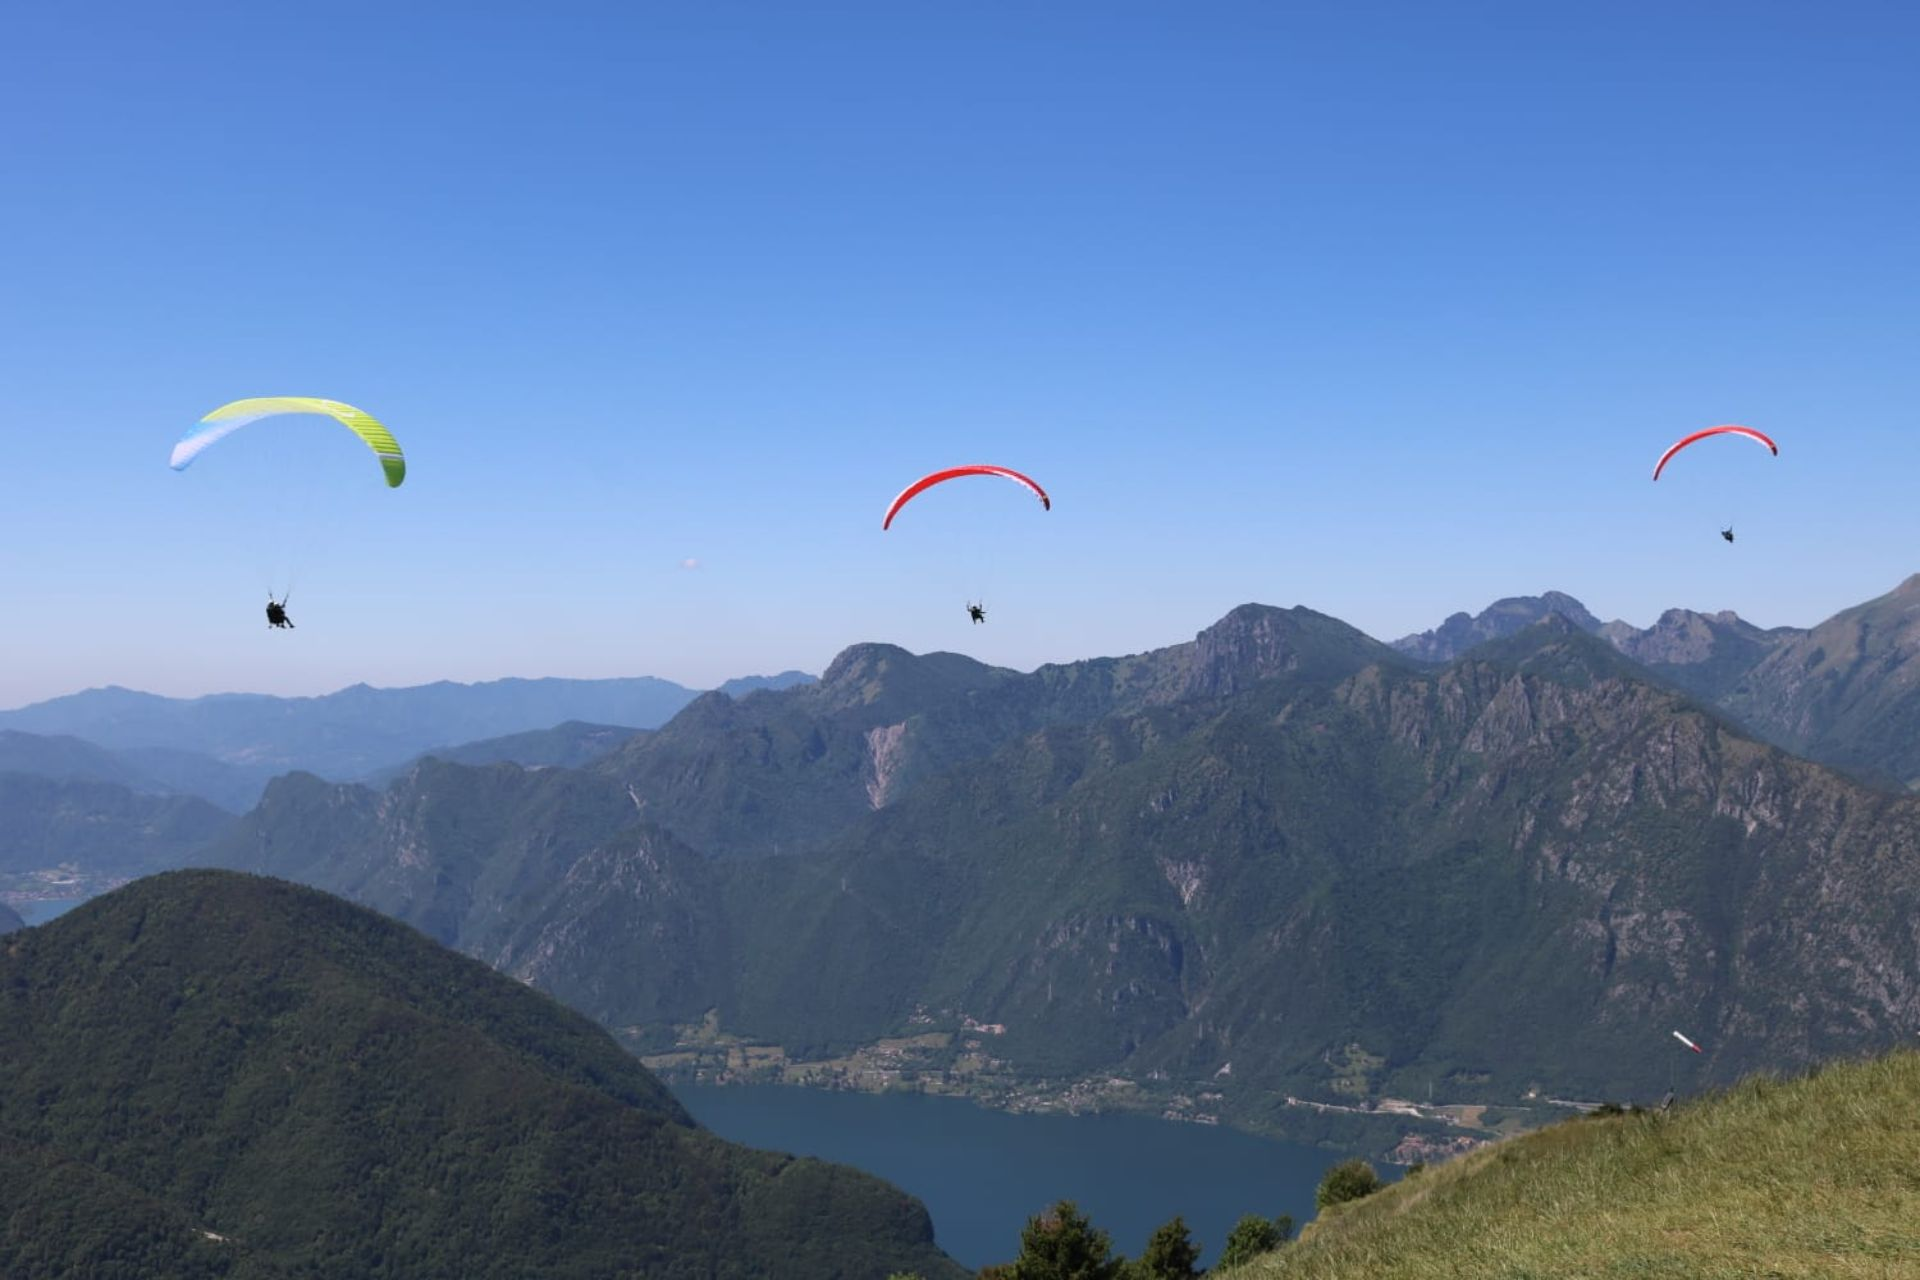 paragliders-flying-from-italian-mountain-towards-lake-paragliding-valle-del-chiese-trentino-italy